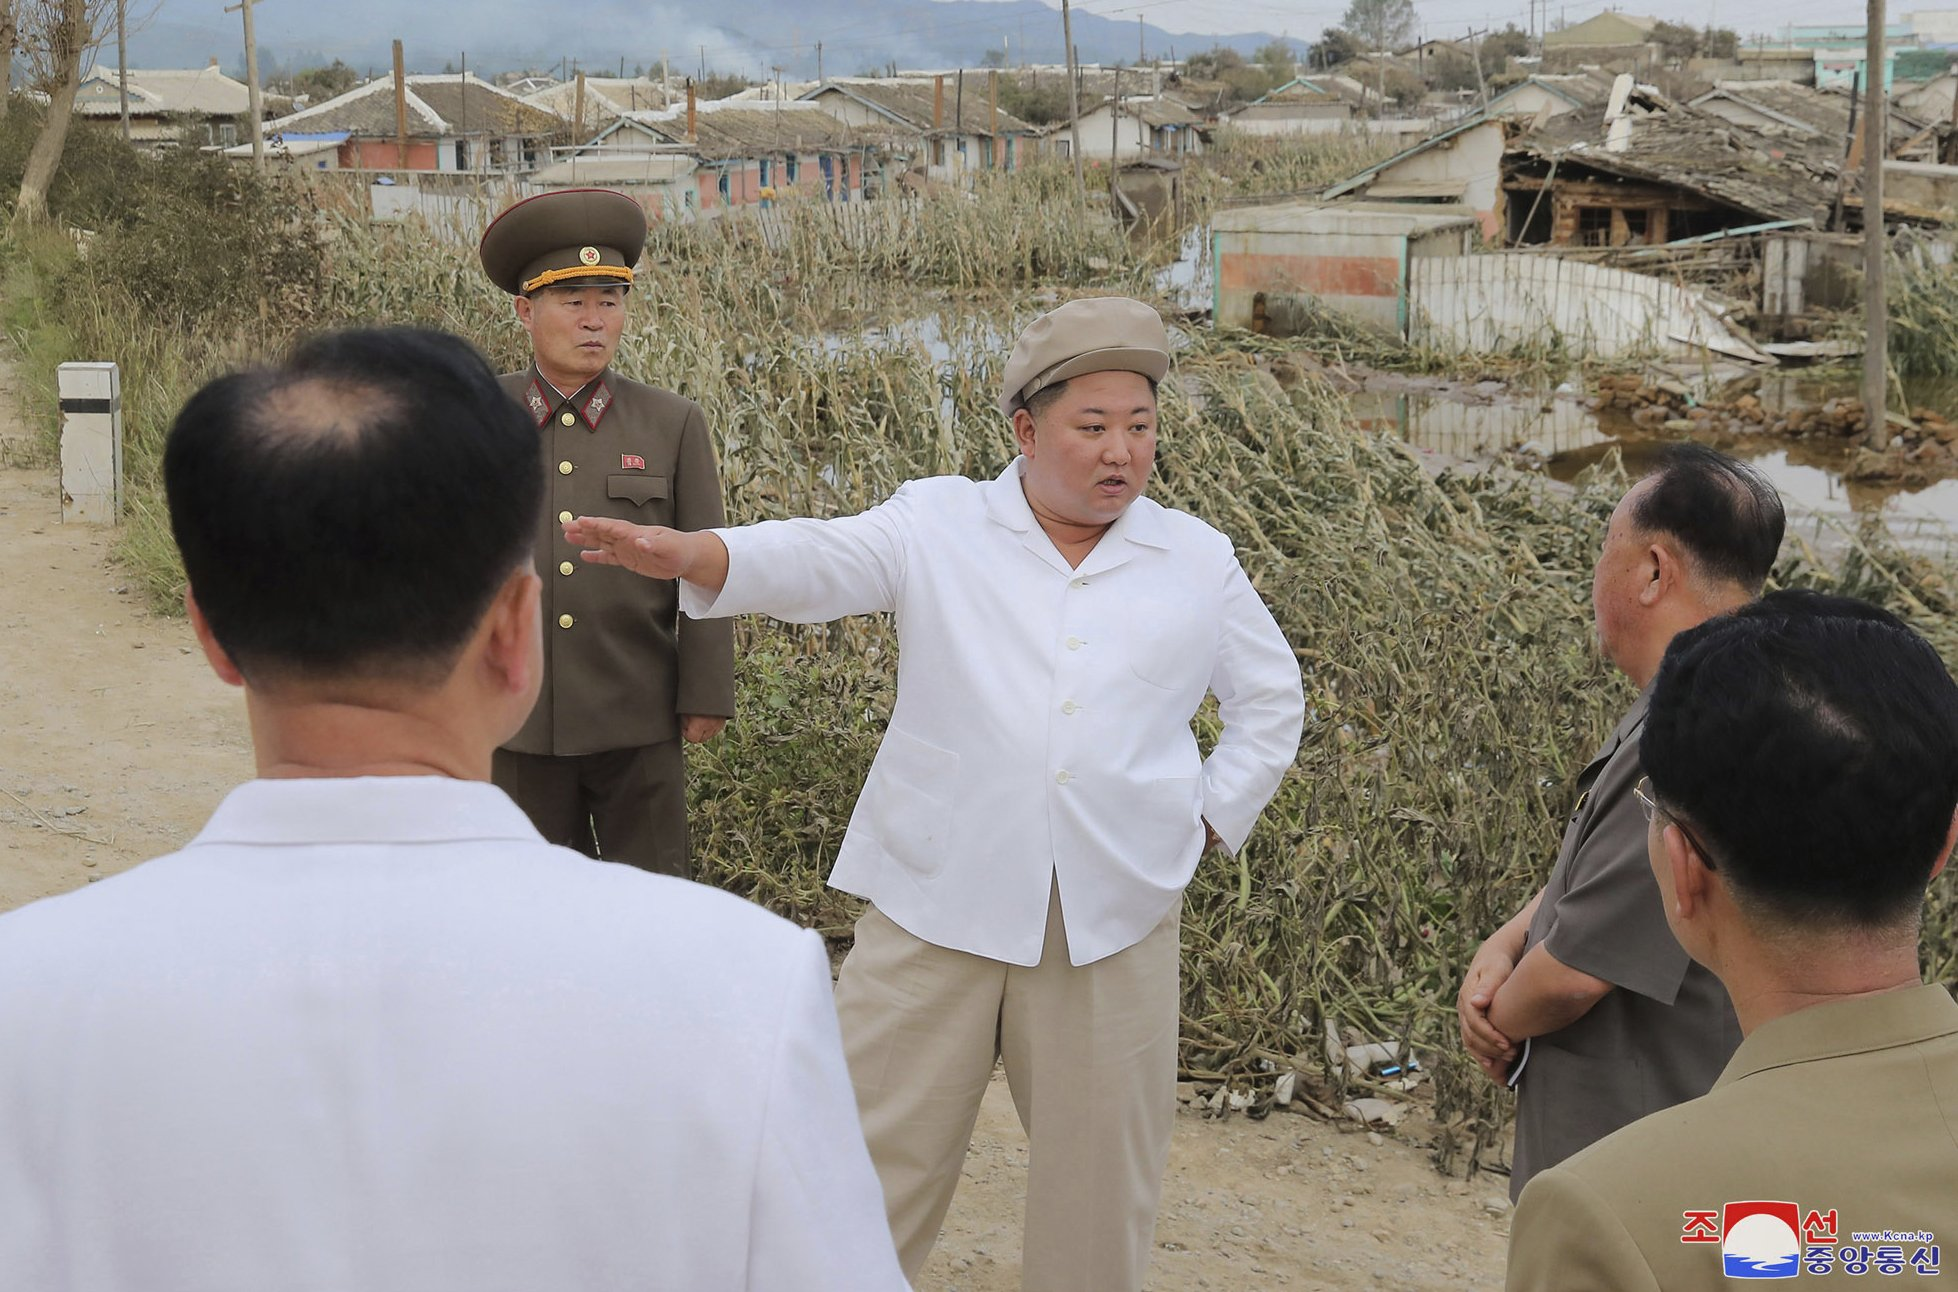 Seeking unity, NKorea's Kim vows to overcome typhoon damage